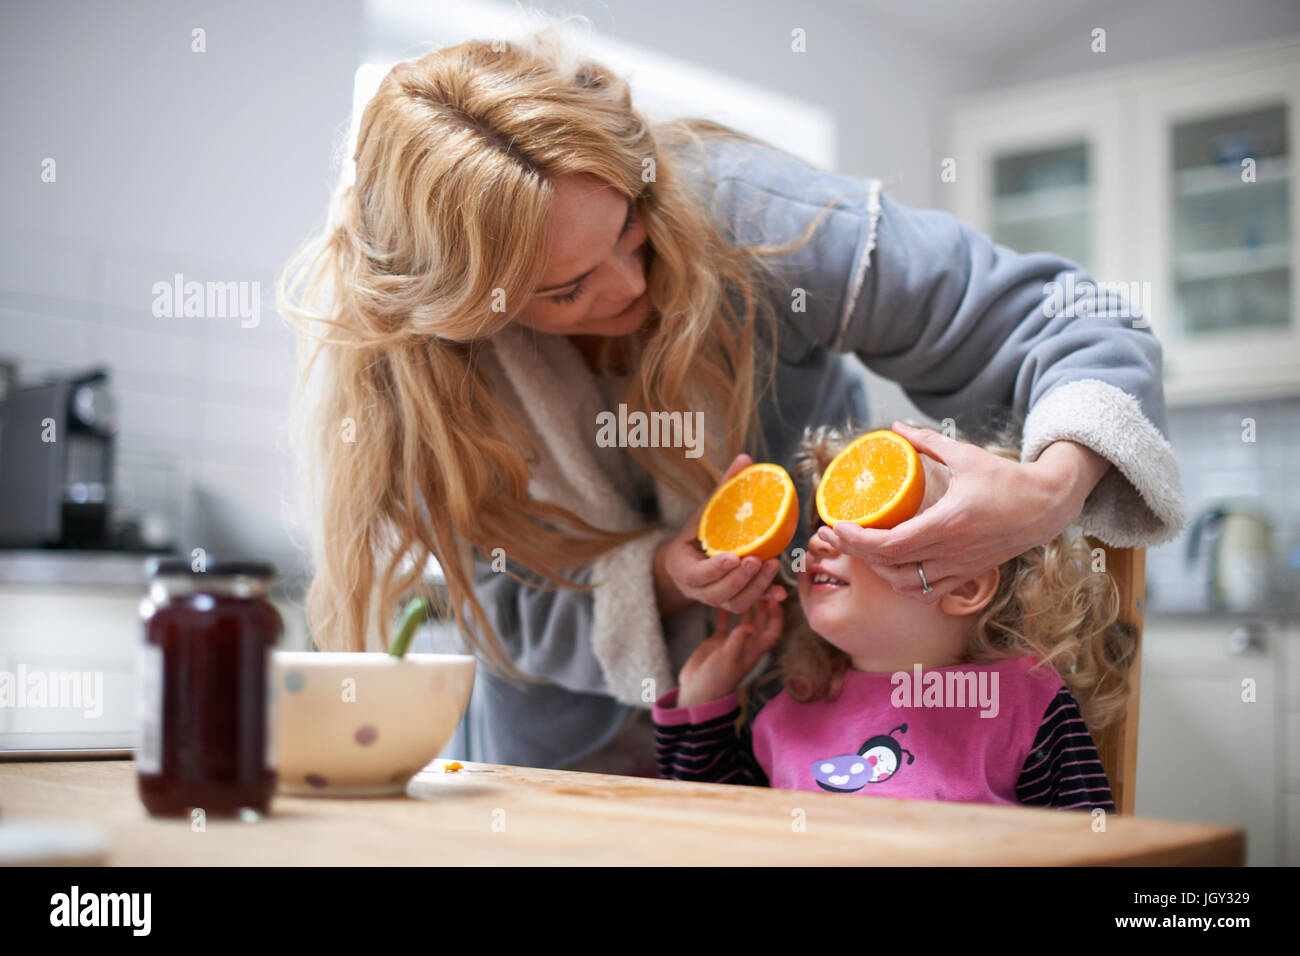 Young girl sitting at kitchen table, mother holding halved orange in front of daughter's eyes - Stock Image